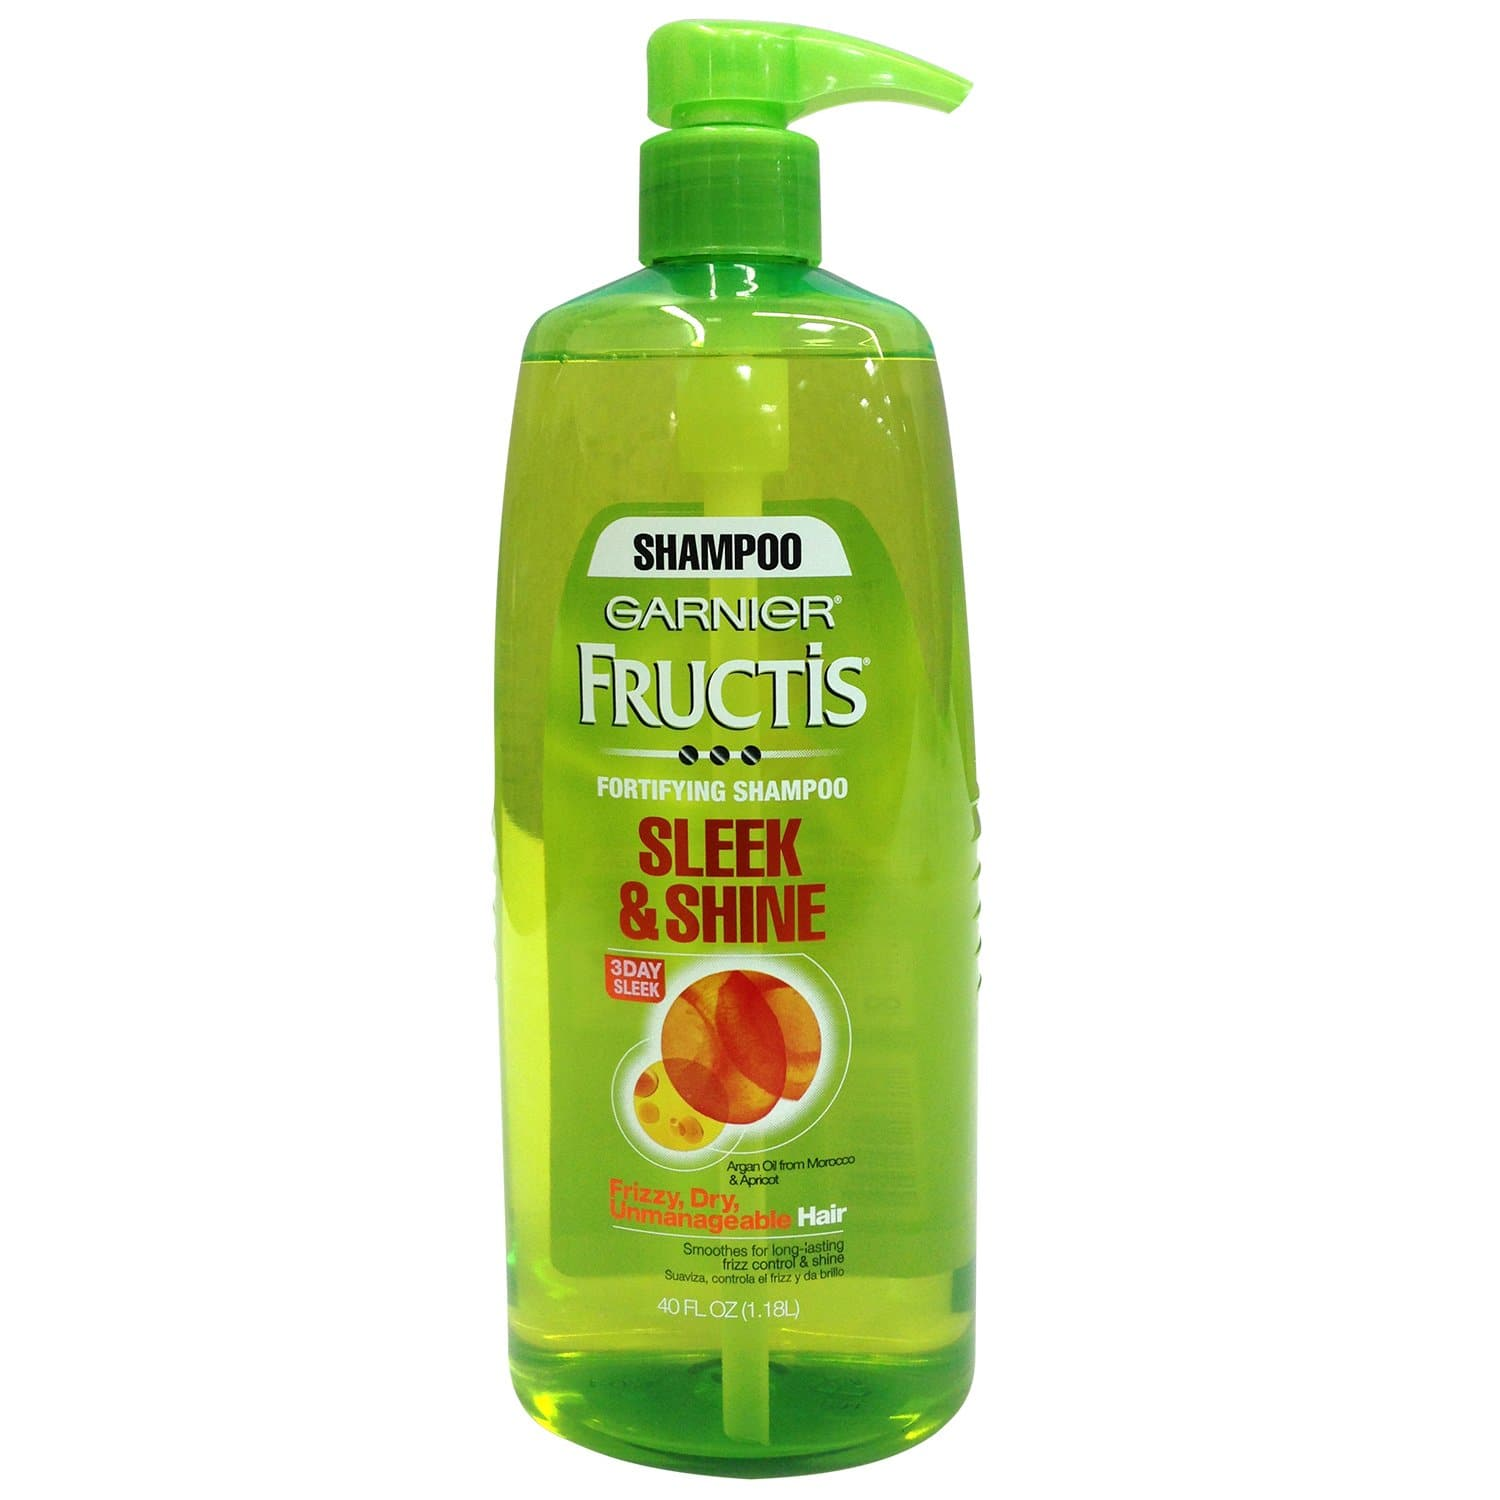 Sam's Club Members: 40oz Garnier Fructis Sleek & Shine Shampoo or Conditioner $4.50 + Free S/H for Plus Members